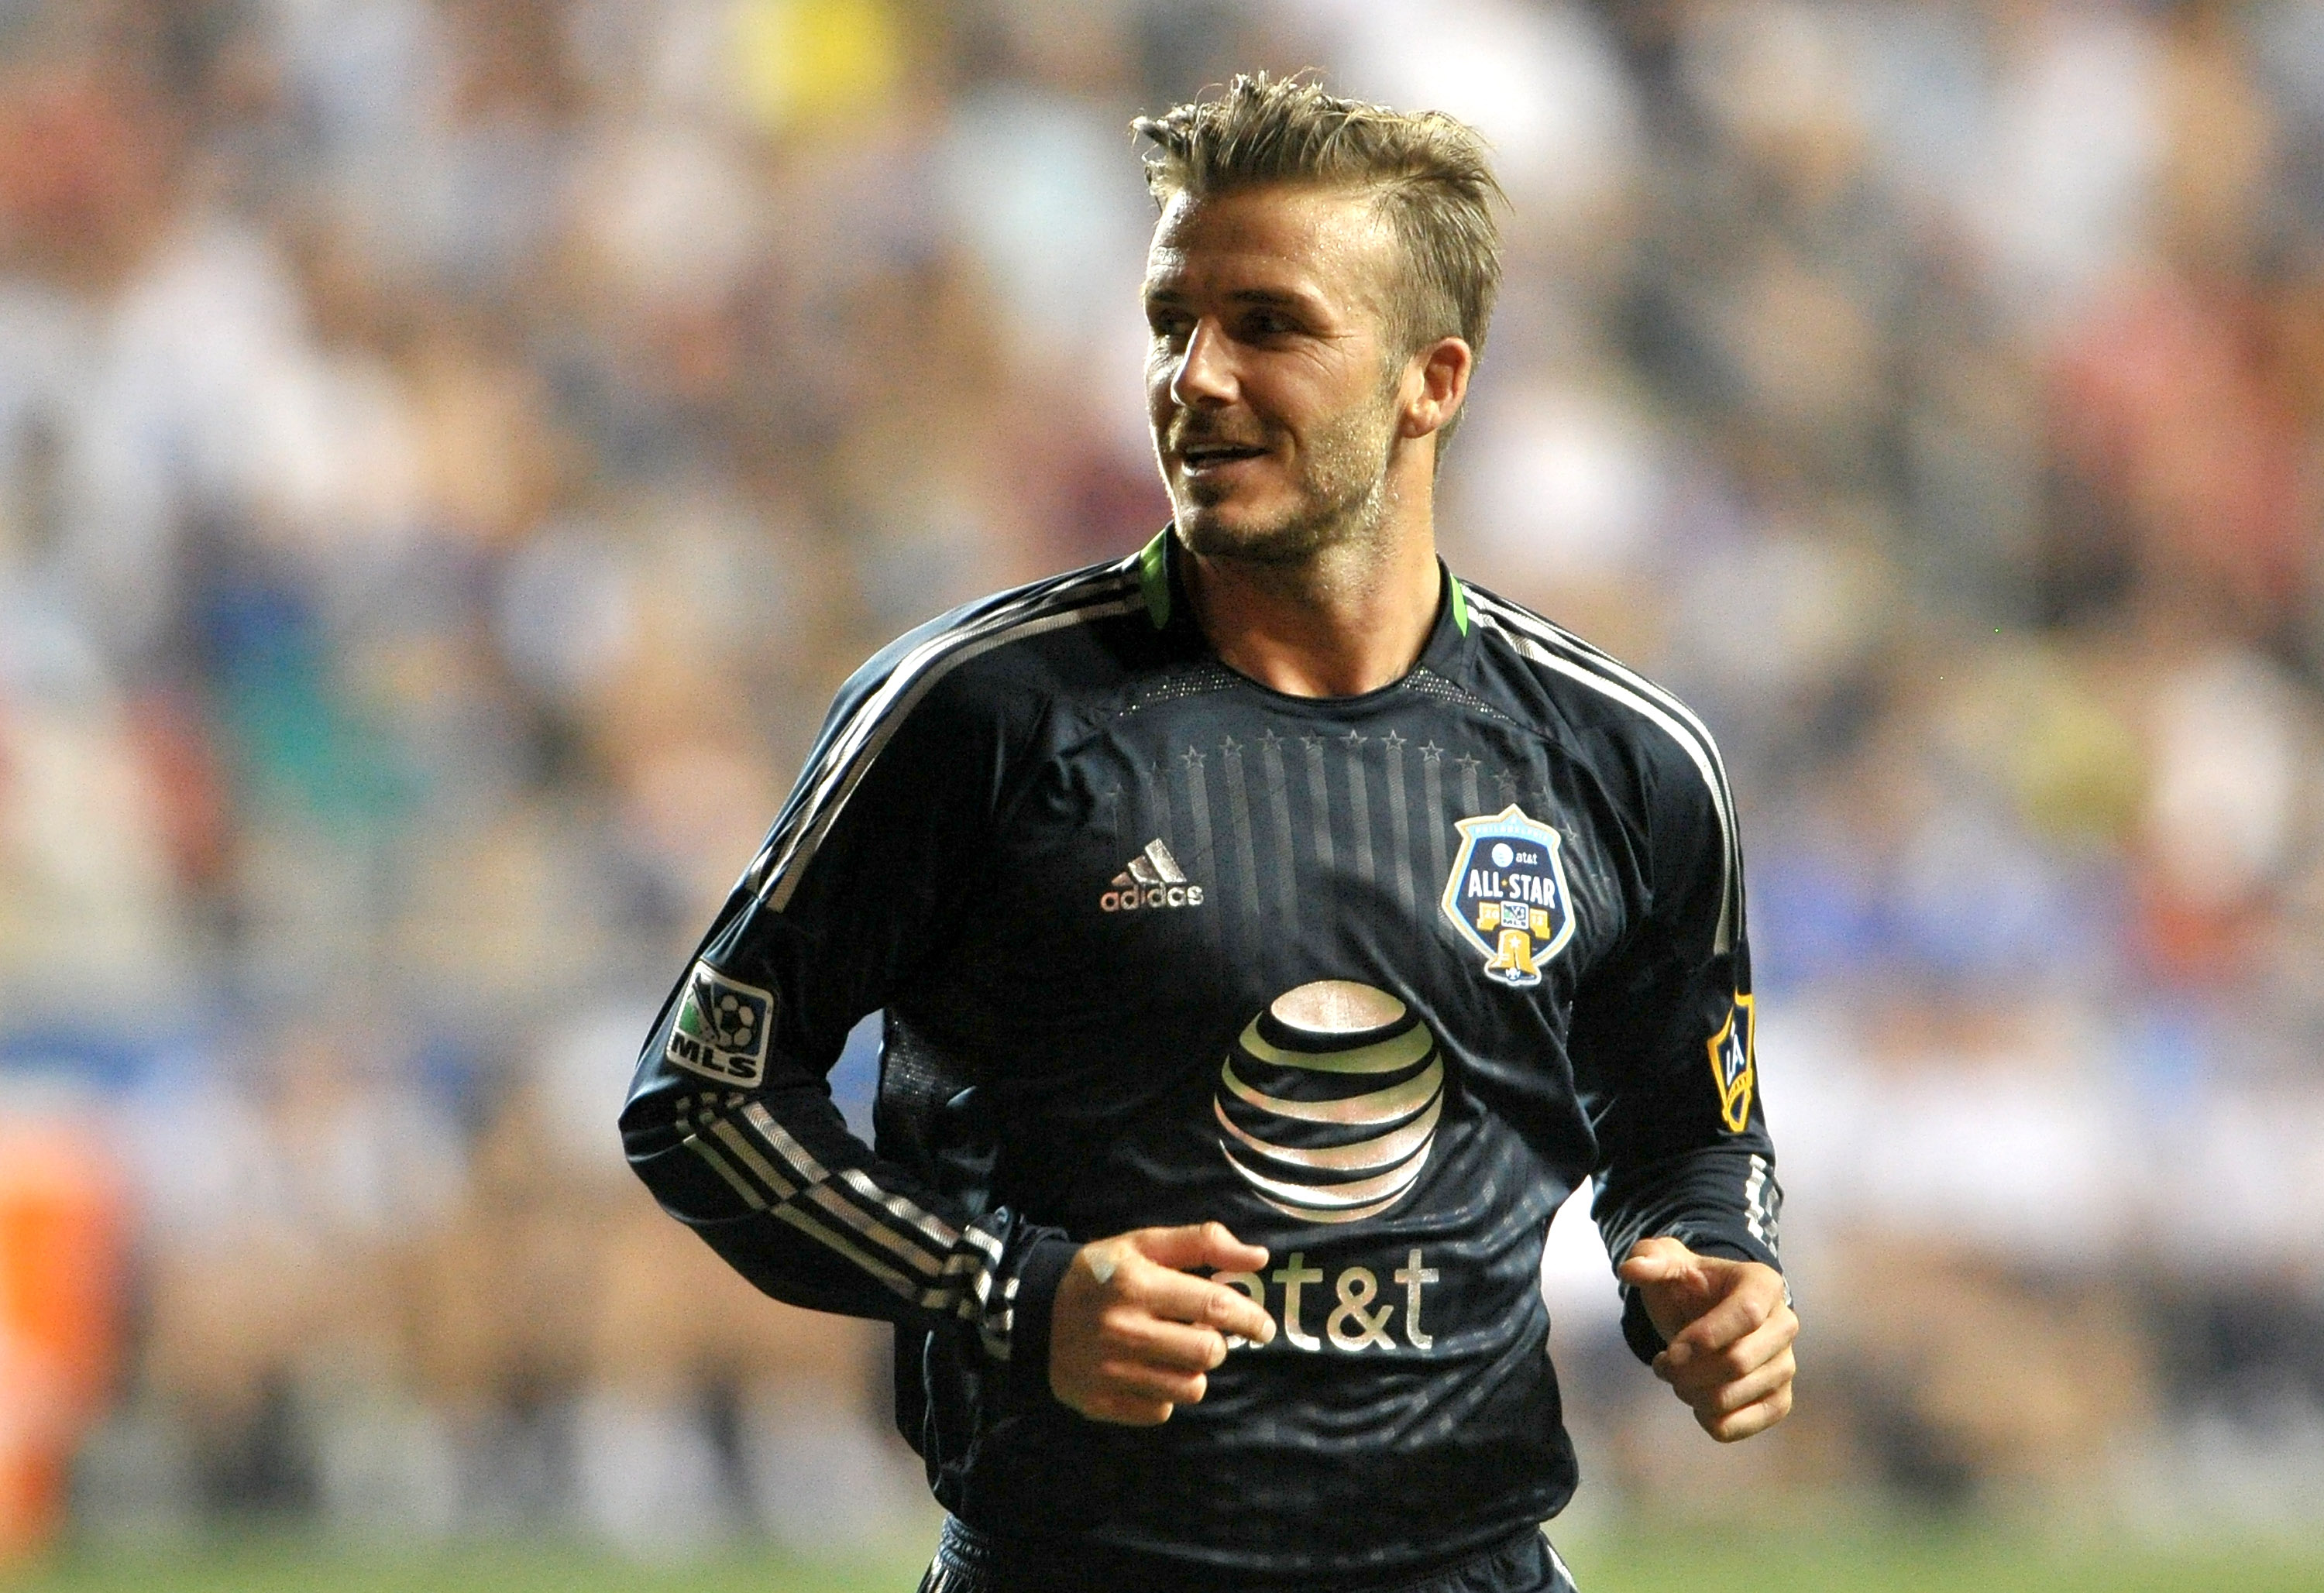 Top 10 Haircuts In Todays Game 1 David Beckham Los Angeles